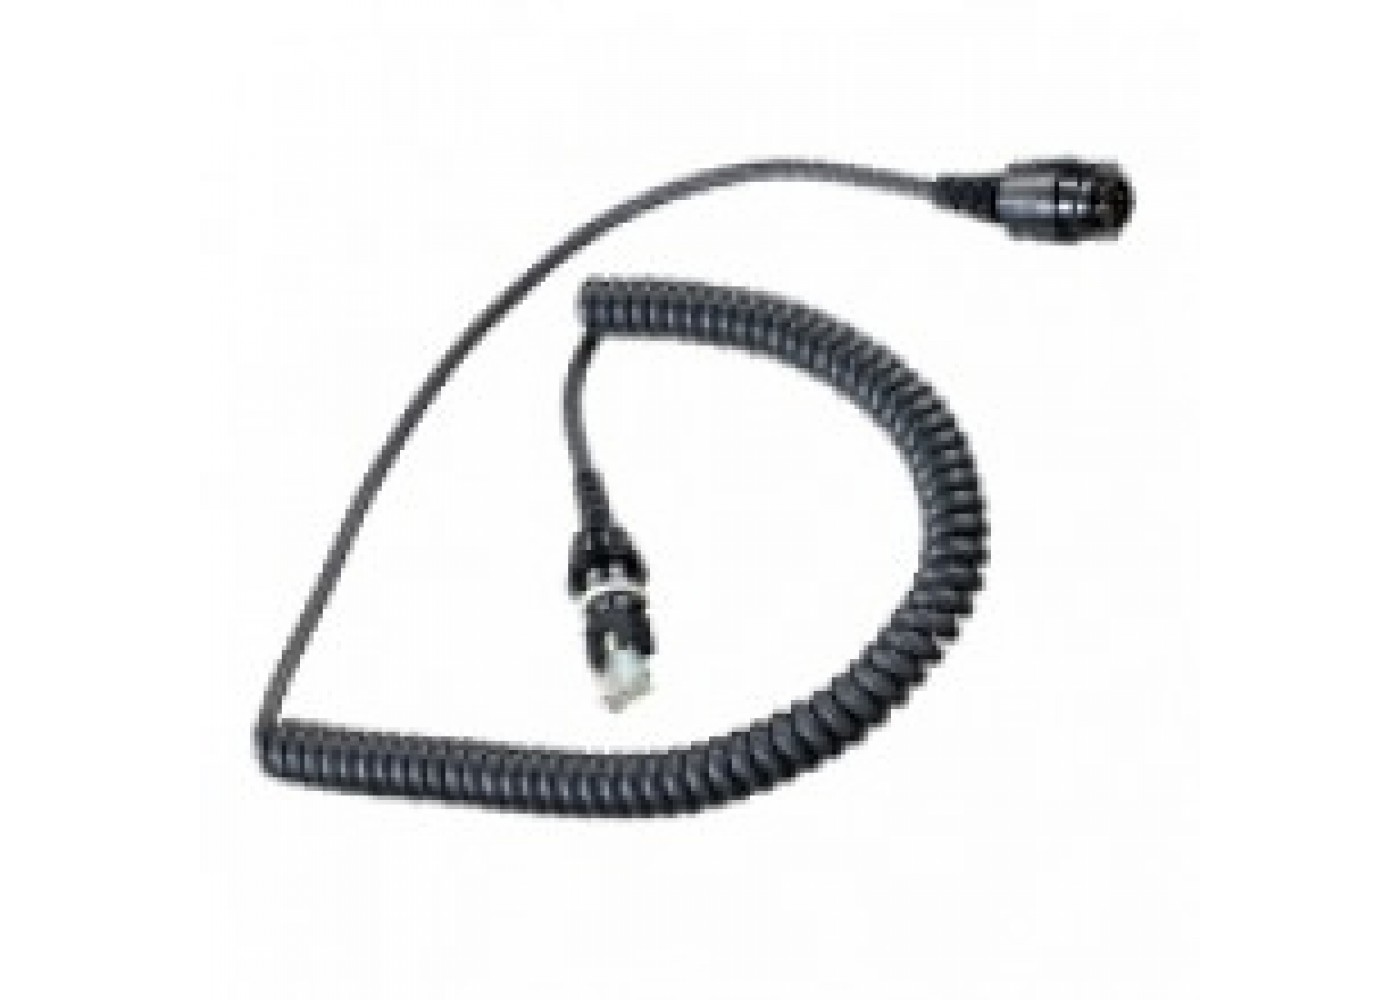 Motorola Pmln6538 Lightweight Headset 2 Pin For Cp200d in addition Motorola Hkln4424a Swivel Earpiece With In Line Push To Talk together with Base Station Power additionally Pmln5733 Mag One Earbud With Inline Microphone And Push To Talk besides Nntn8296. on motorola fire portable radios